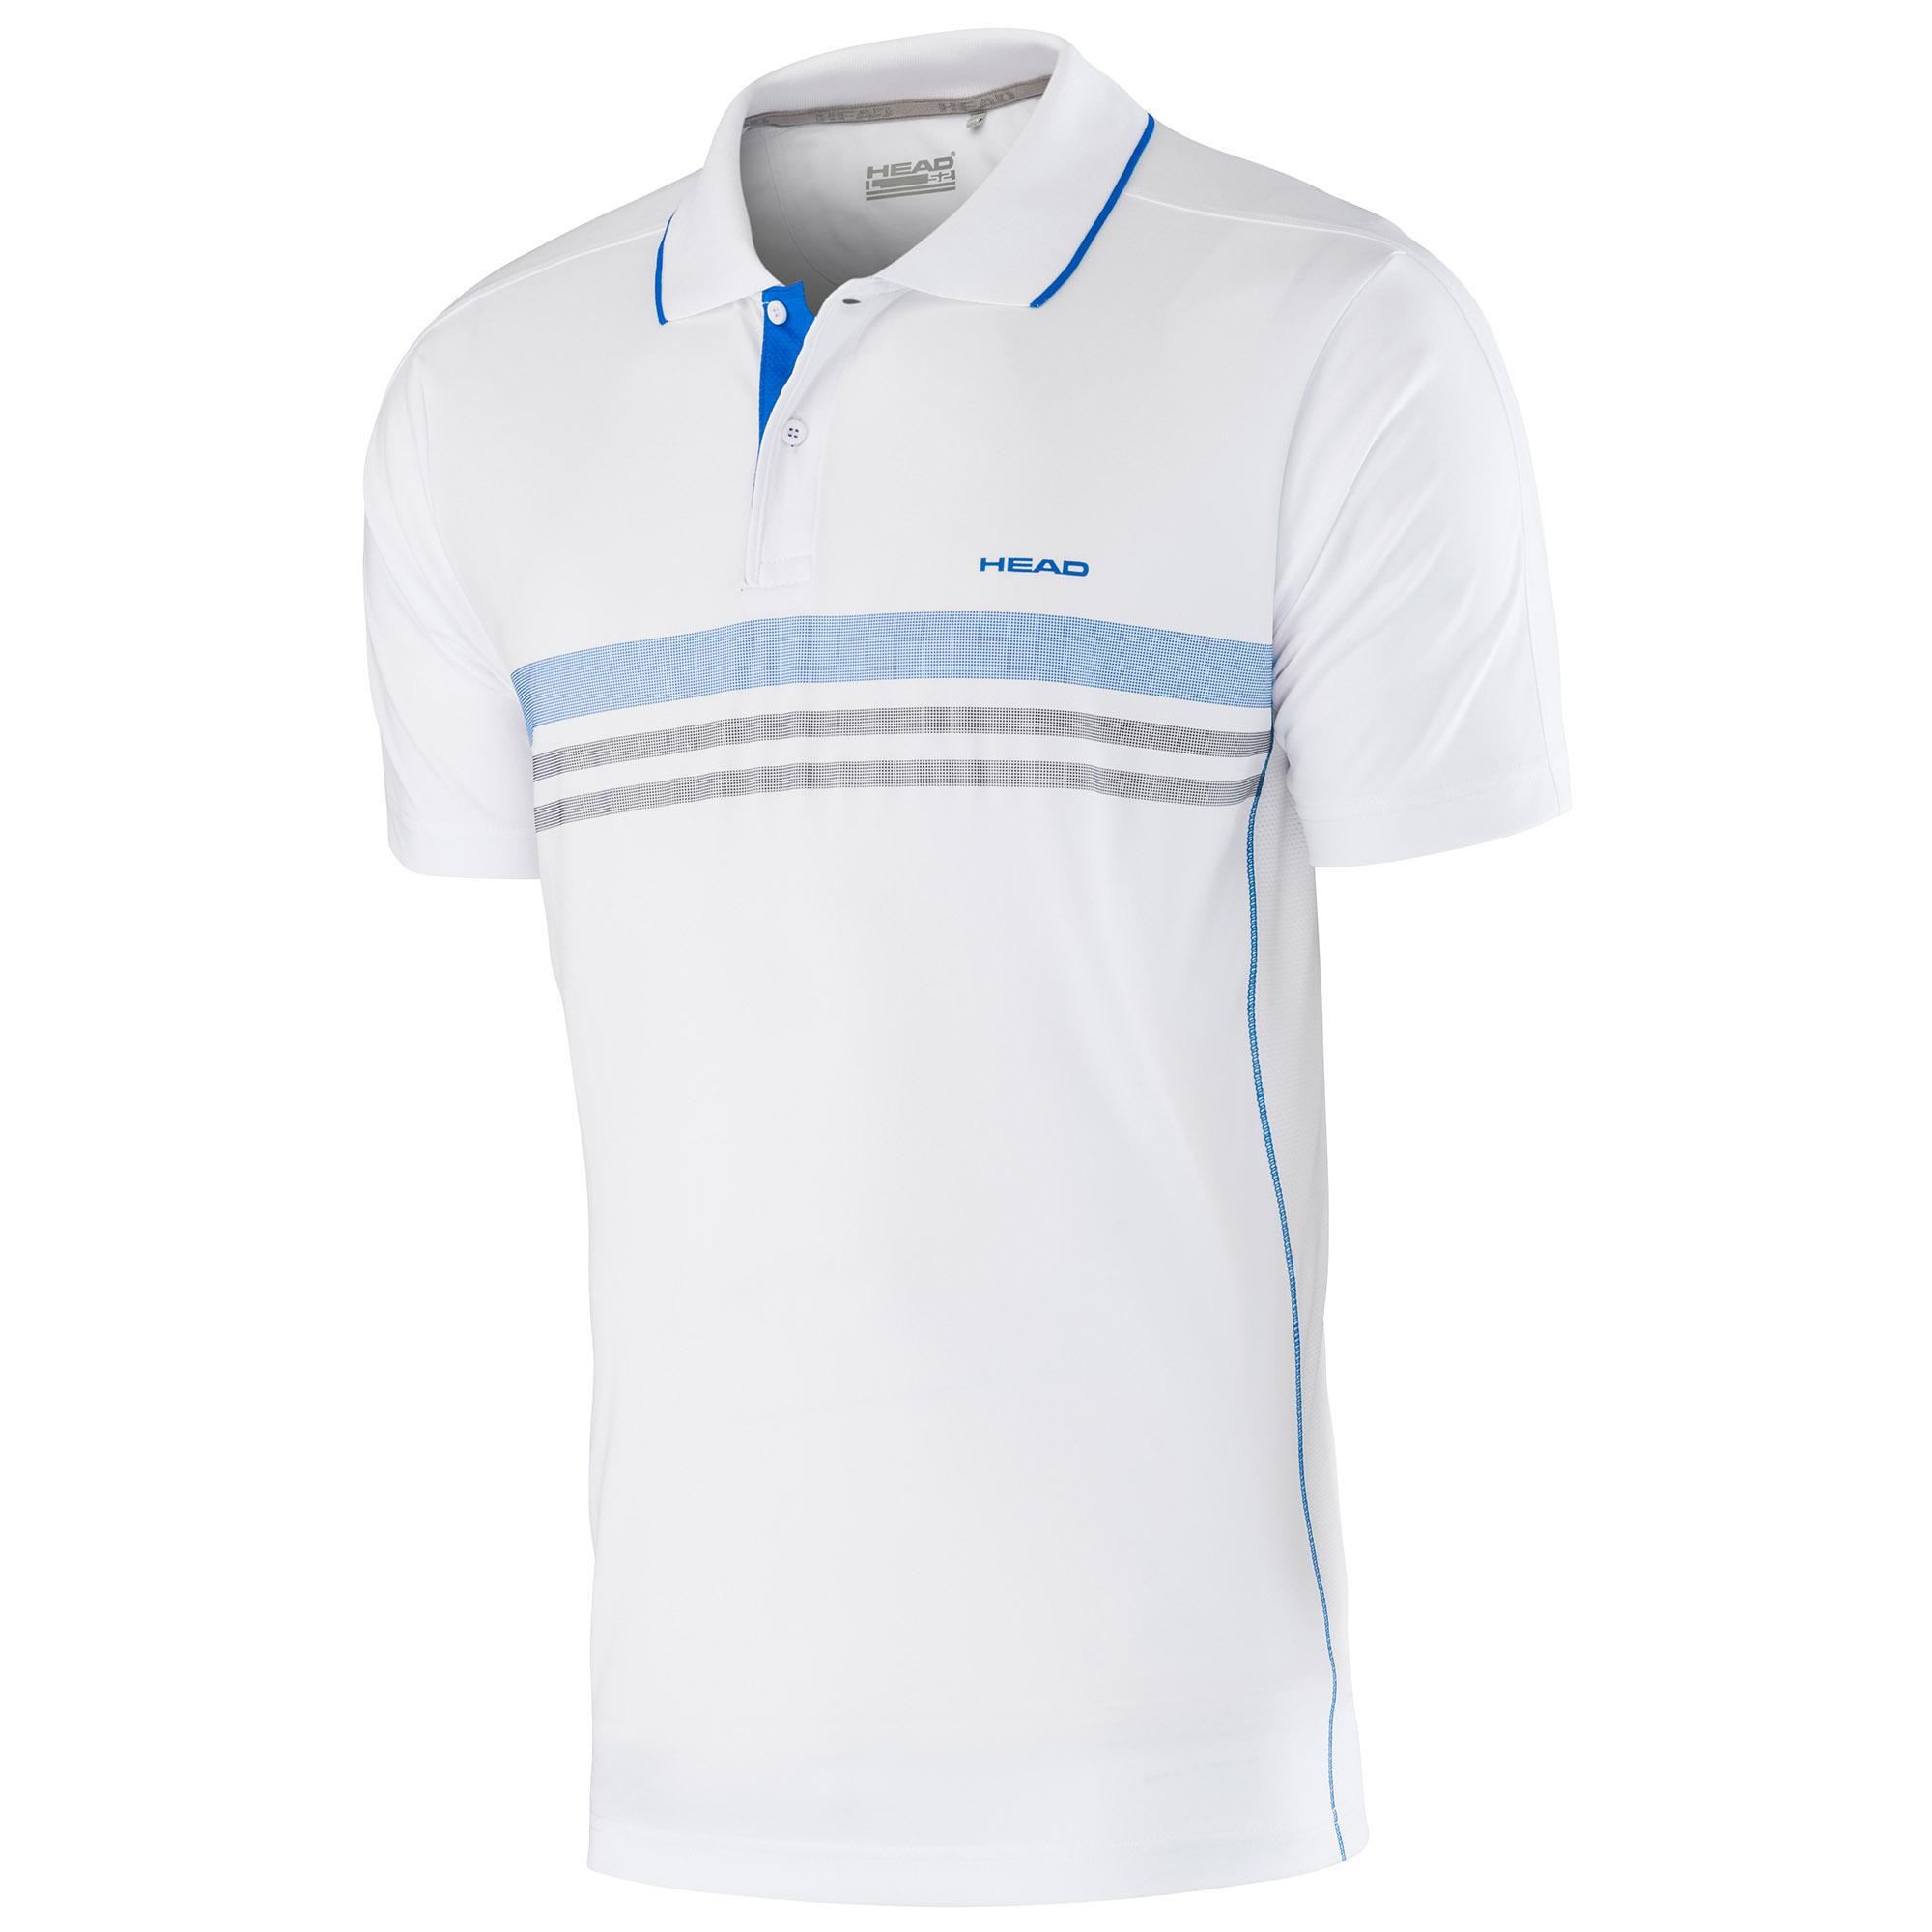 Head Club Polo Shirt Technica Bianco-Blu Bambino 1